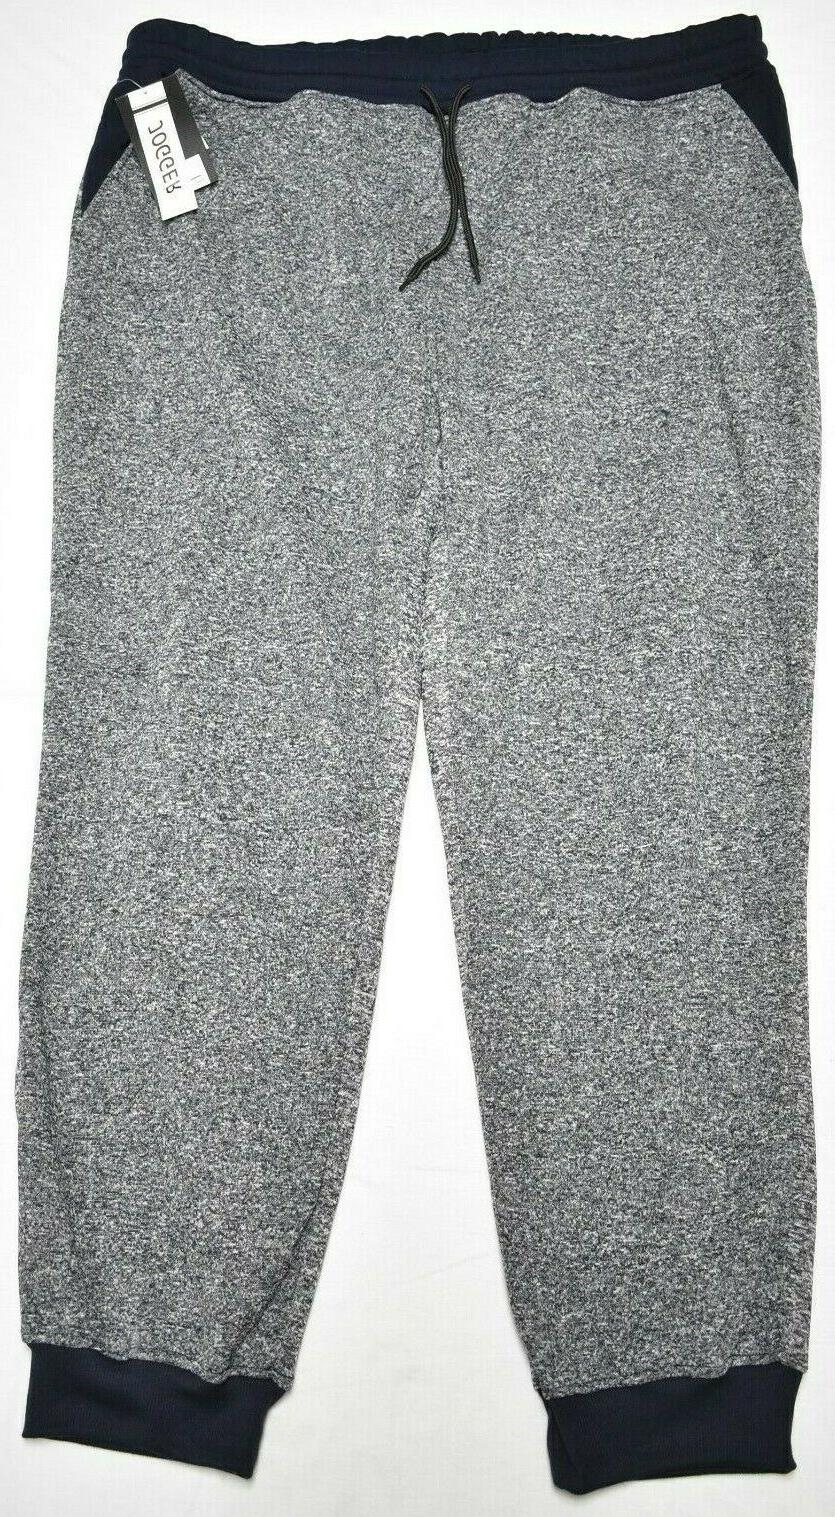 Southpole Jogger Pants Fleece Sweatpants Navy Big P356